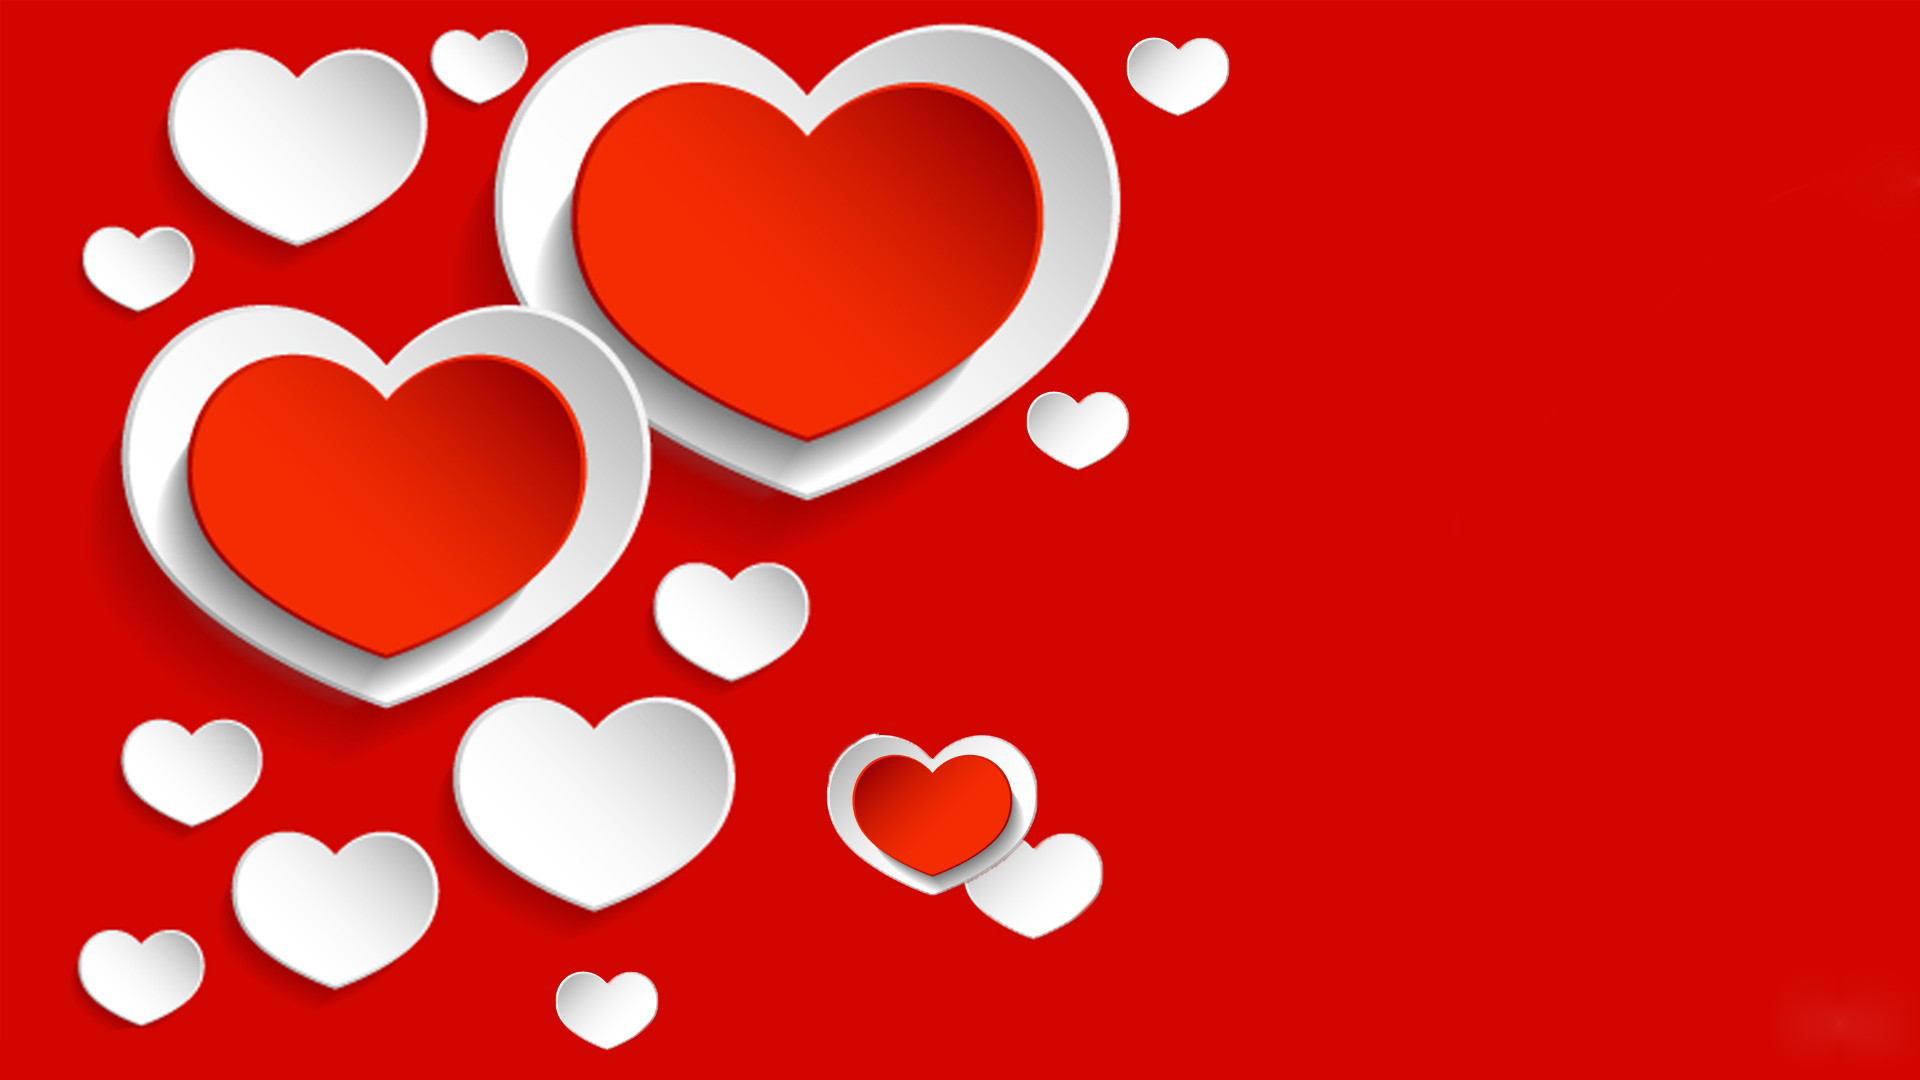 1920x1080 red-wallpaper-white-heart-creative-image-free. Â«Â«